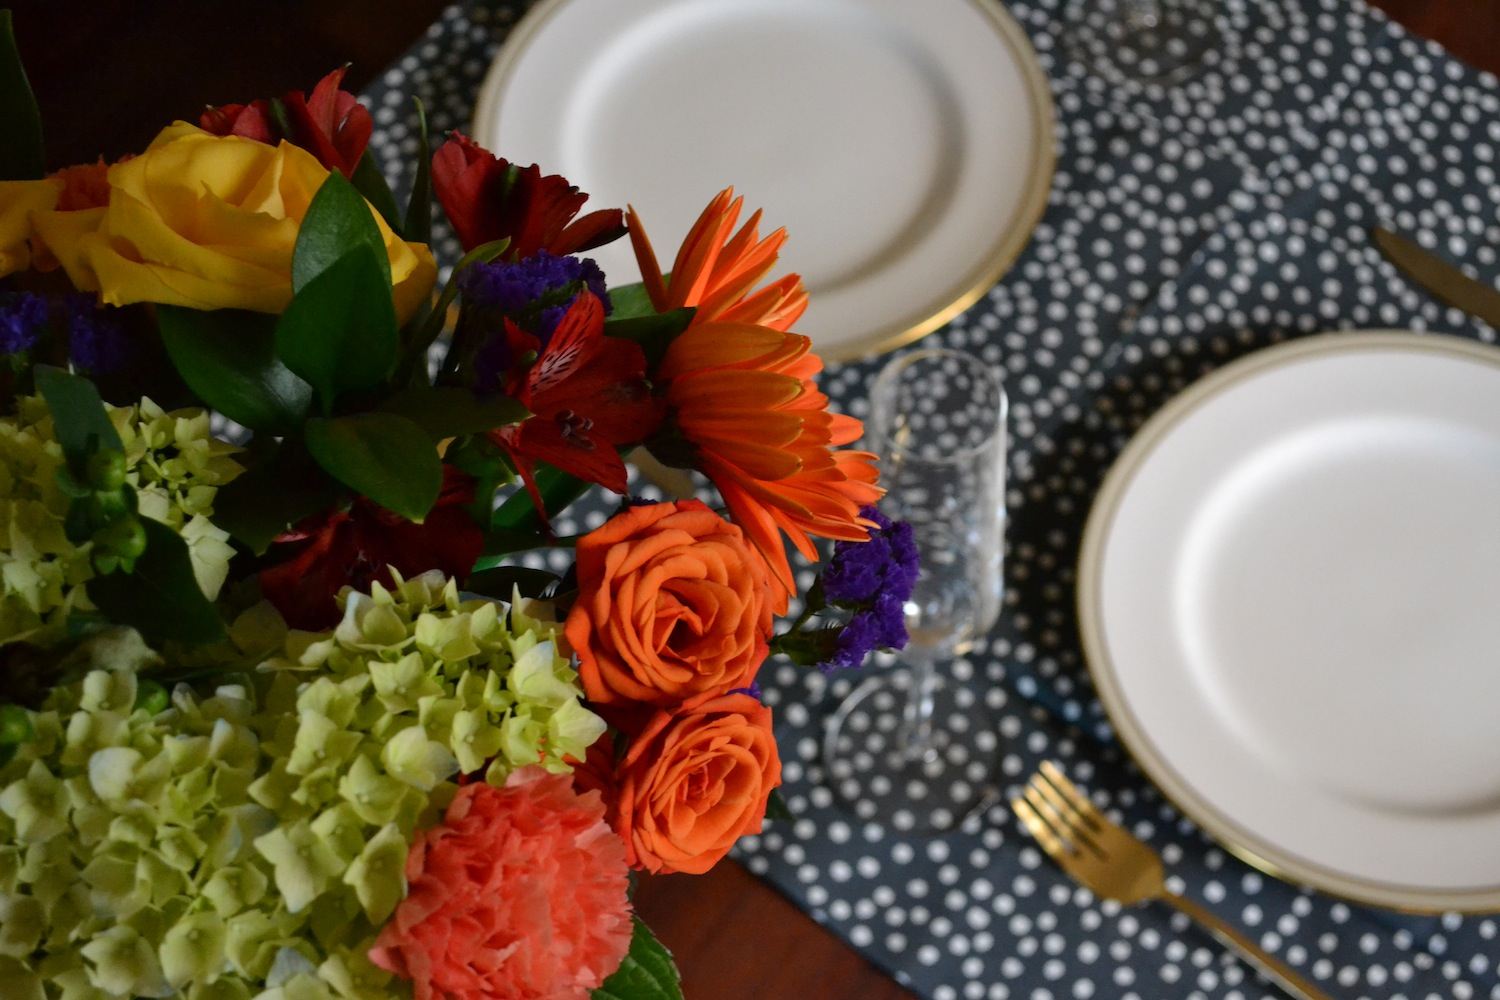 flowers and place settings